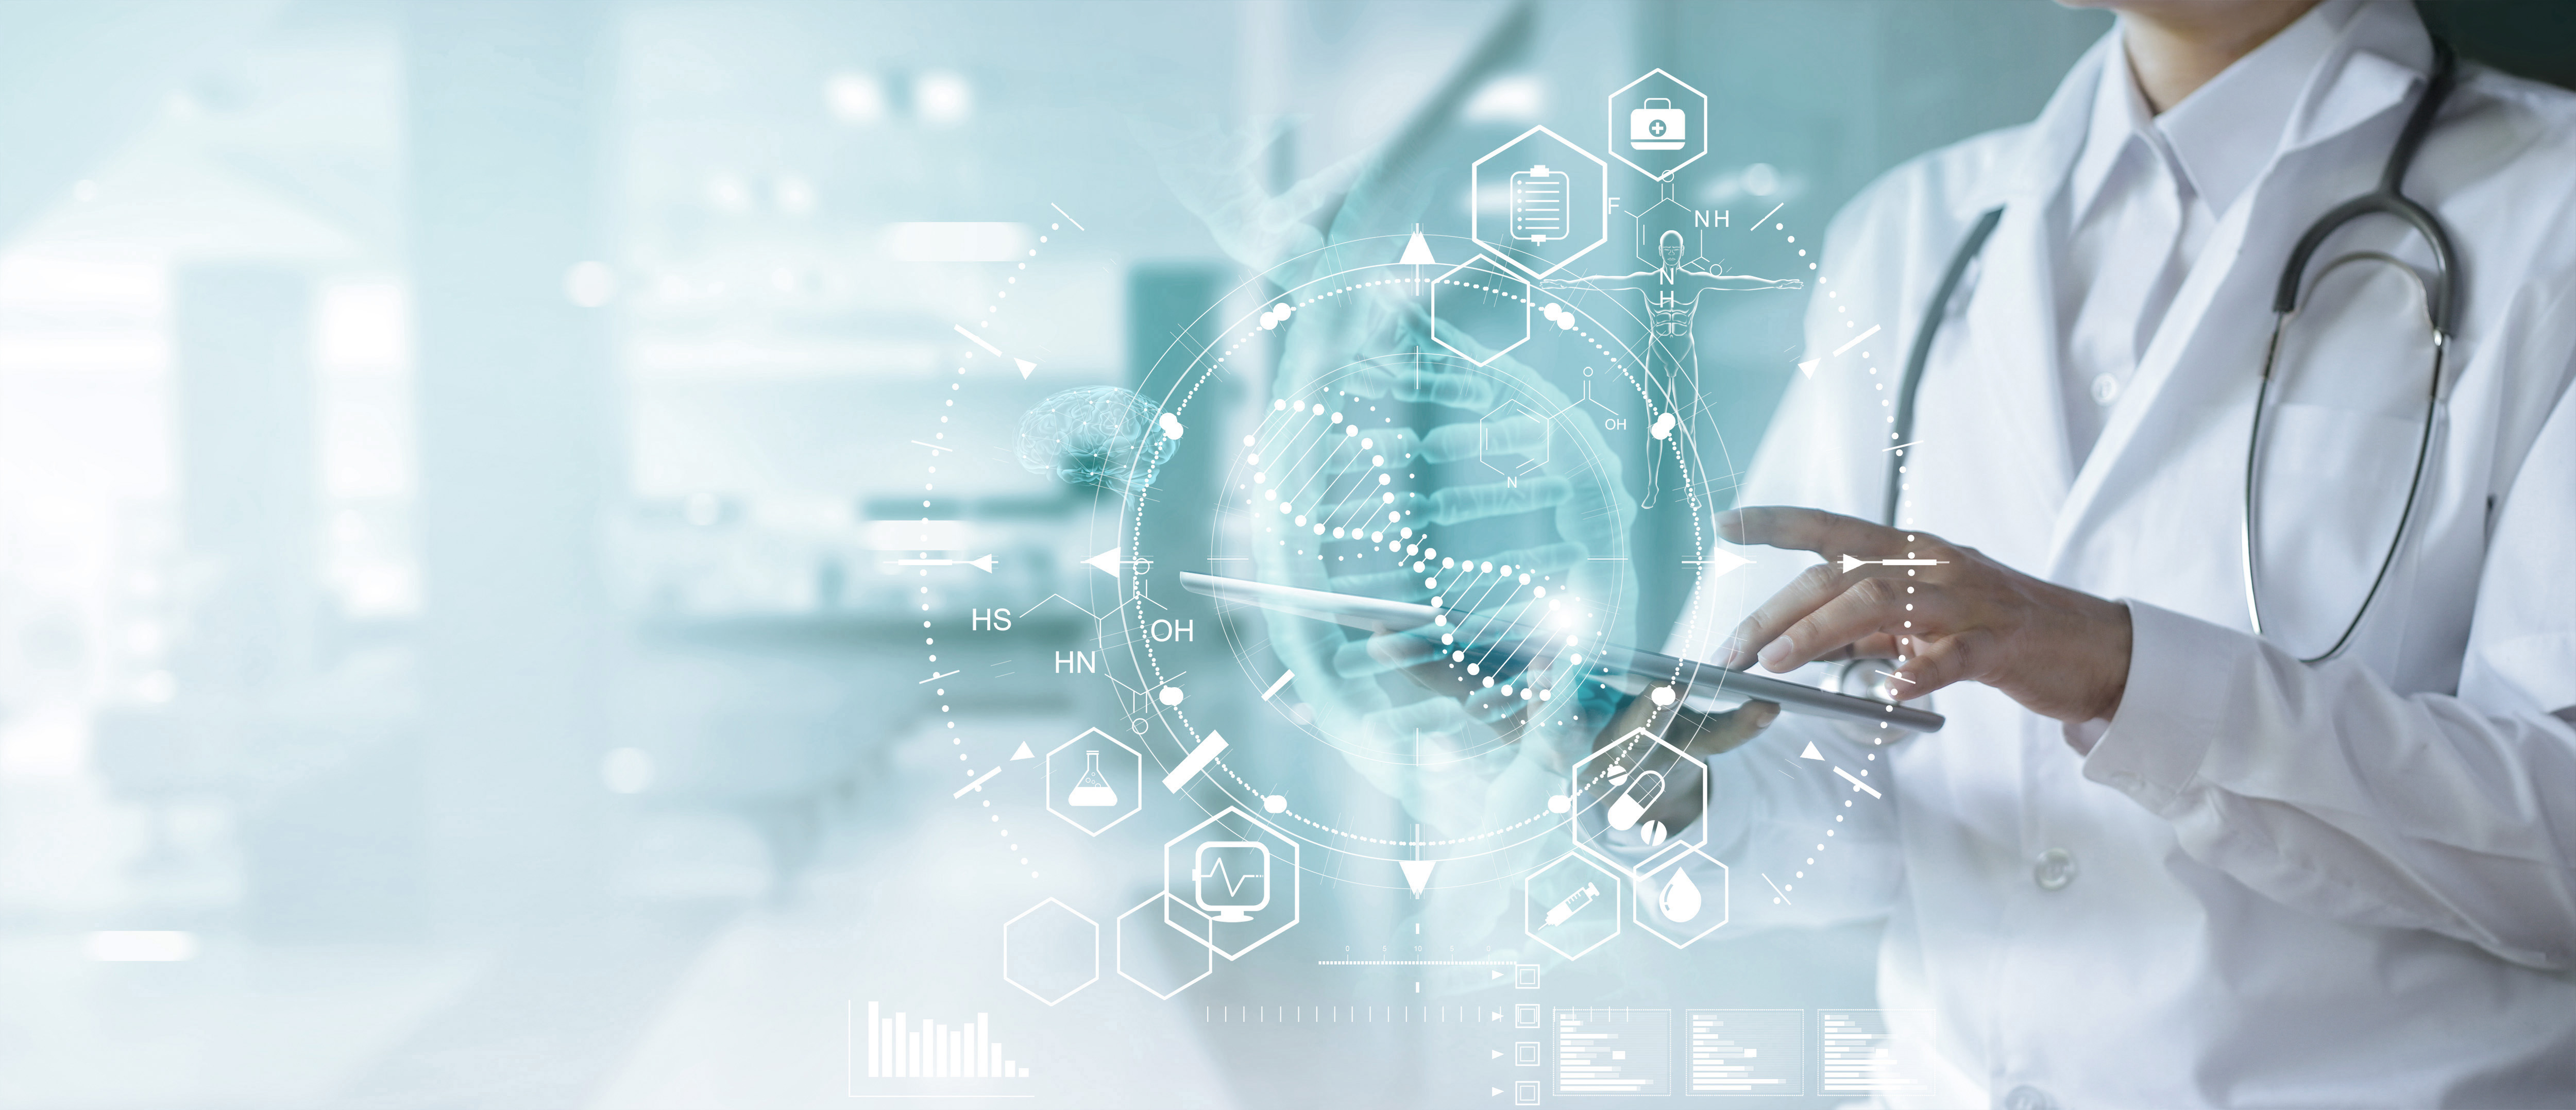 Medicine doctor touching electronic medical record on tablet. DNA. Digital healthcare and network connection on hologram modern virtual screen interface, medical technology and futuristic concept.